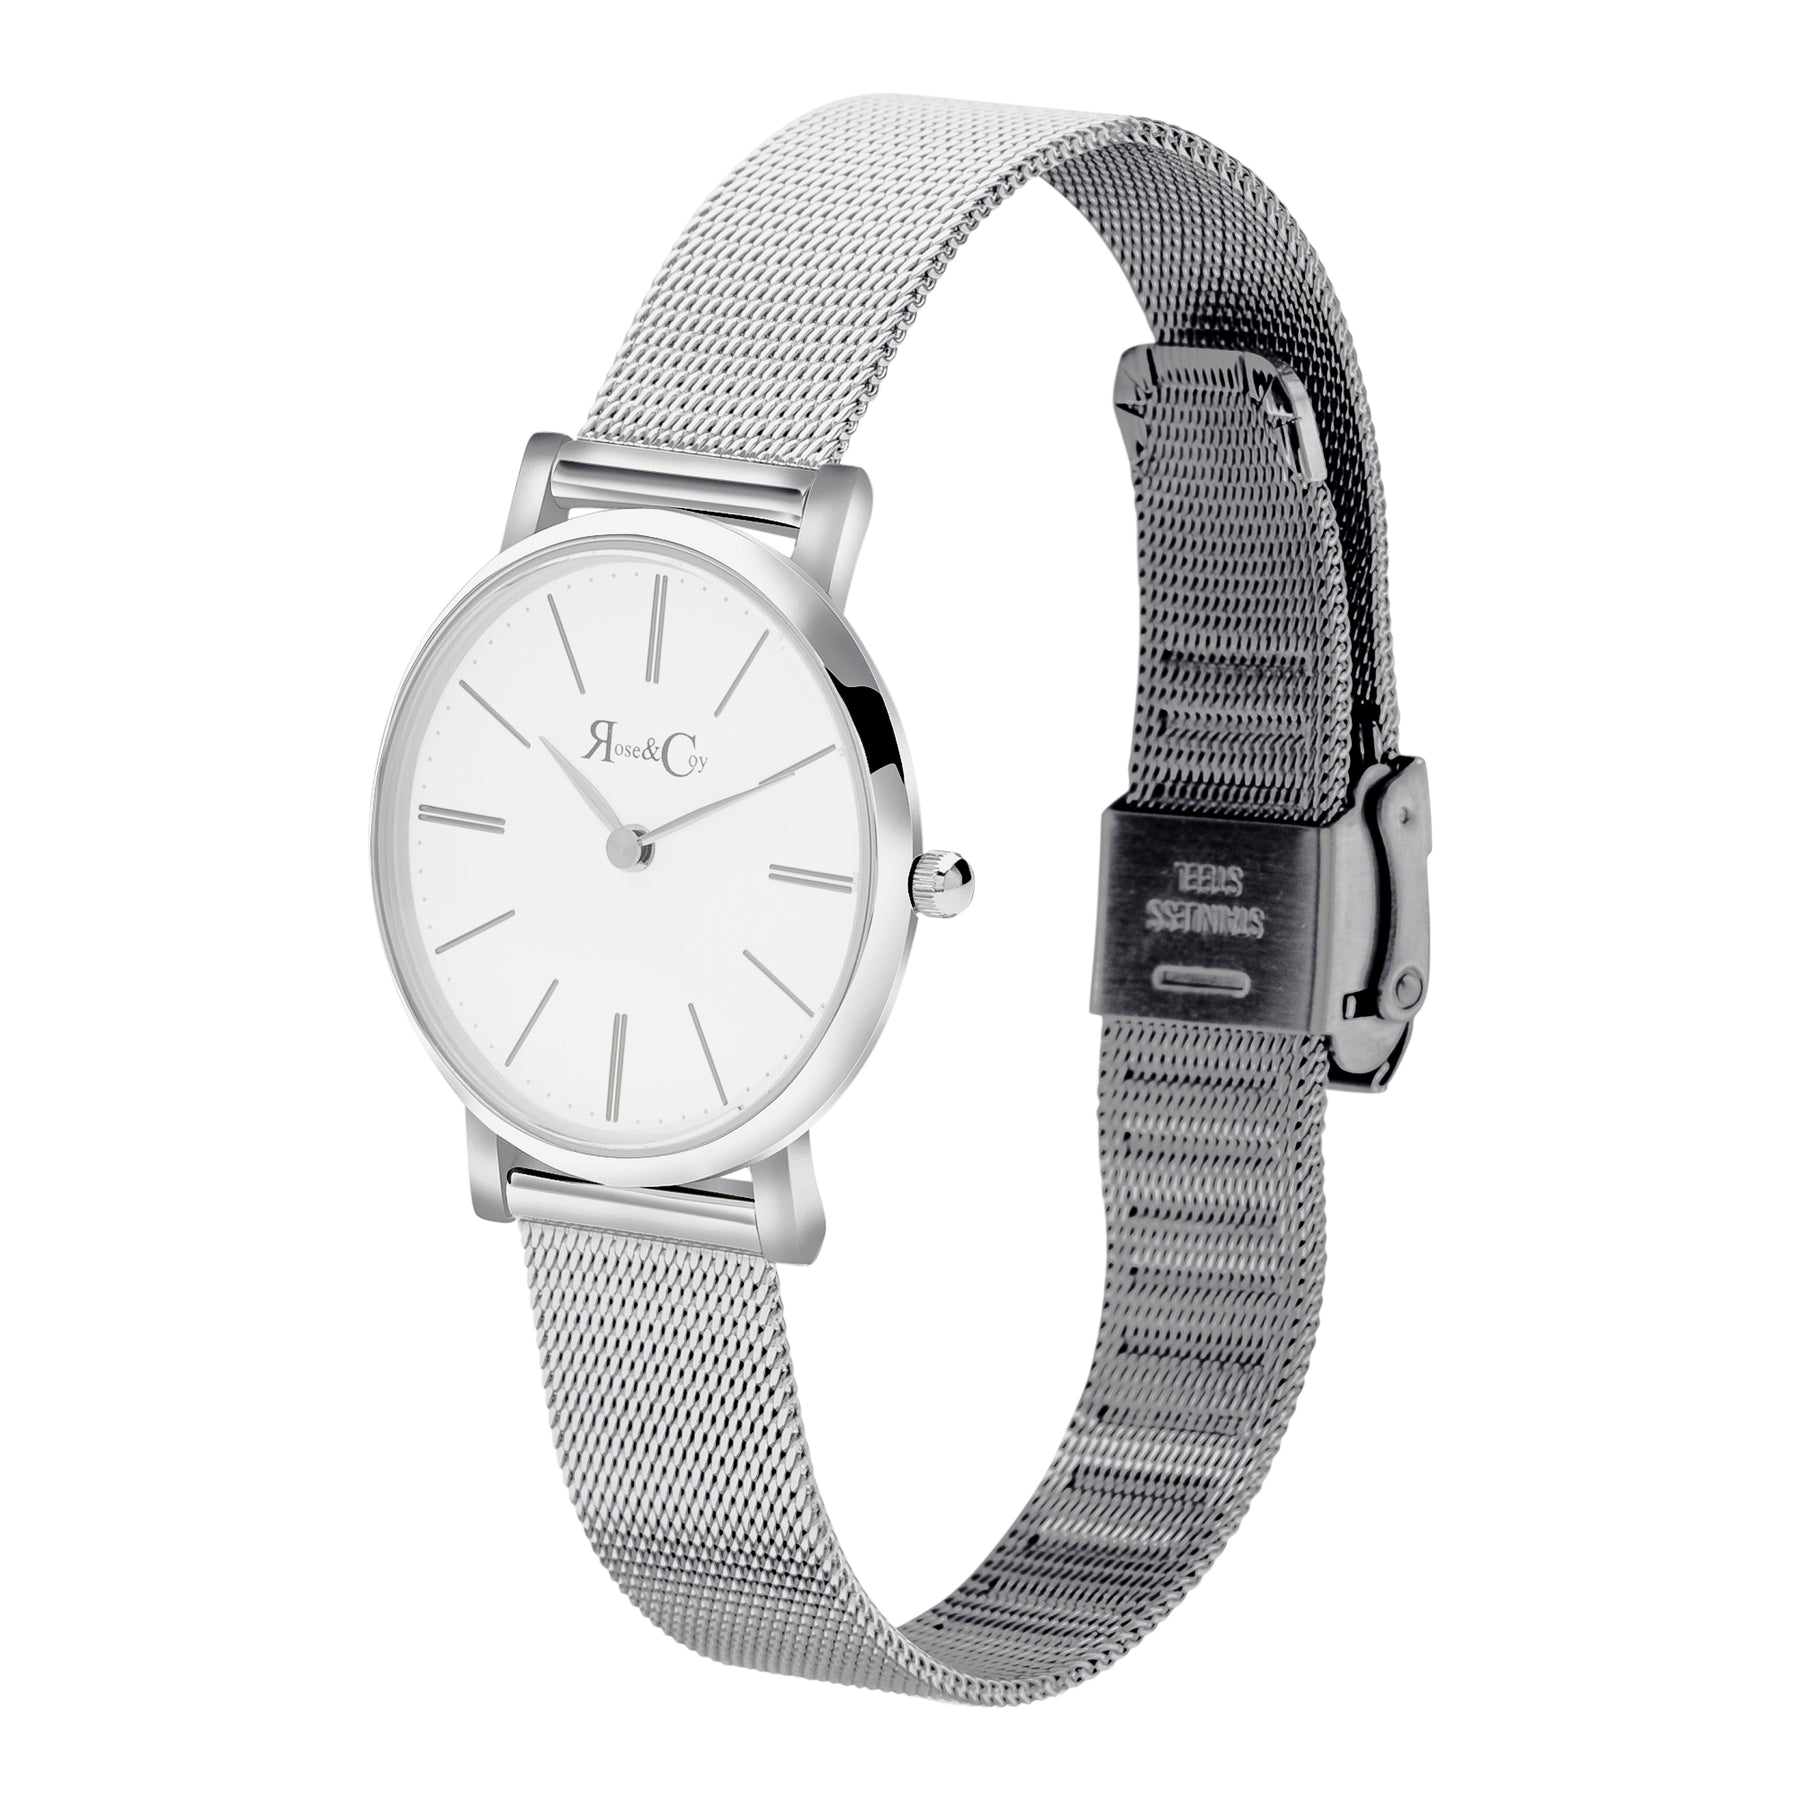 Petite Pinnacle Ultra Slim 30mm Silver | Mesh Strap Watch